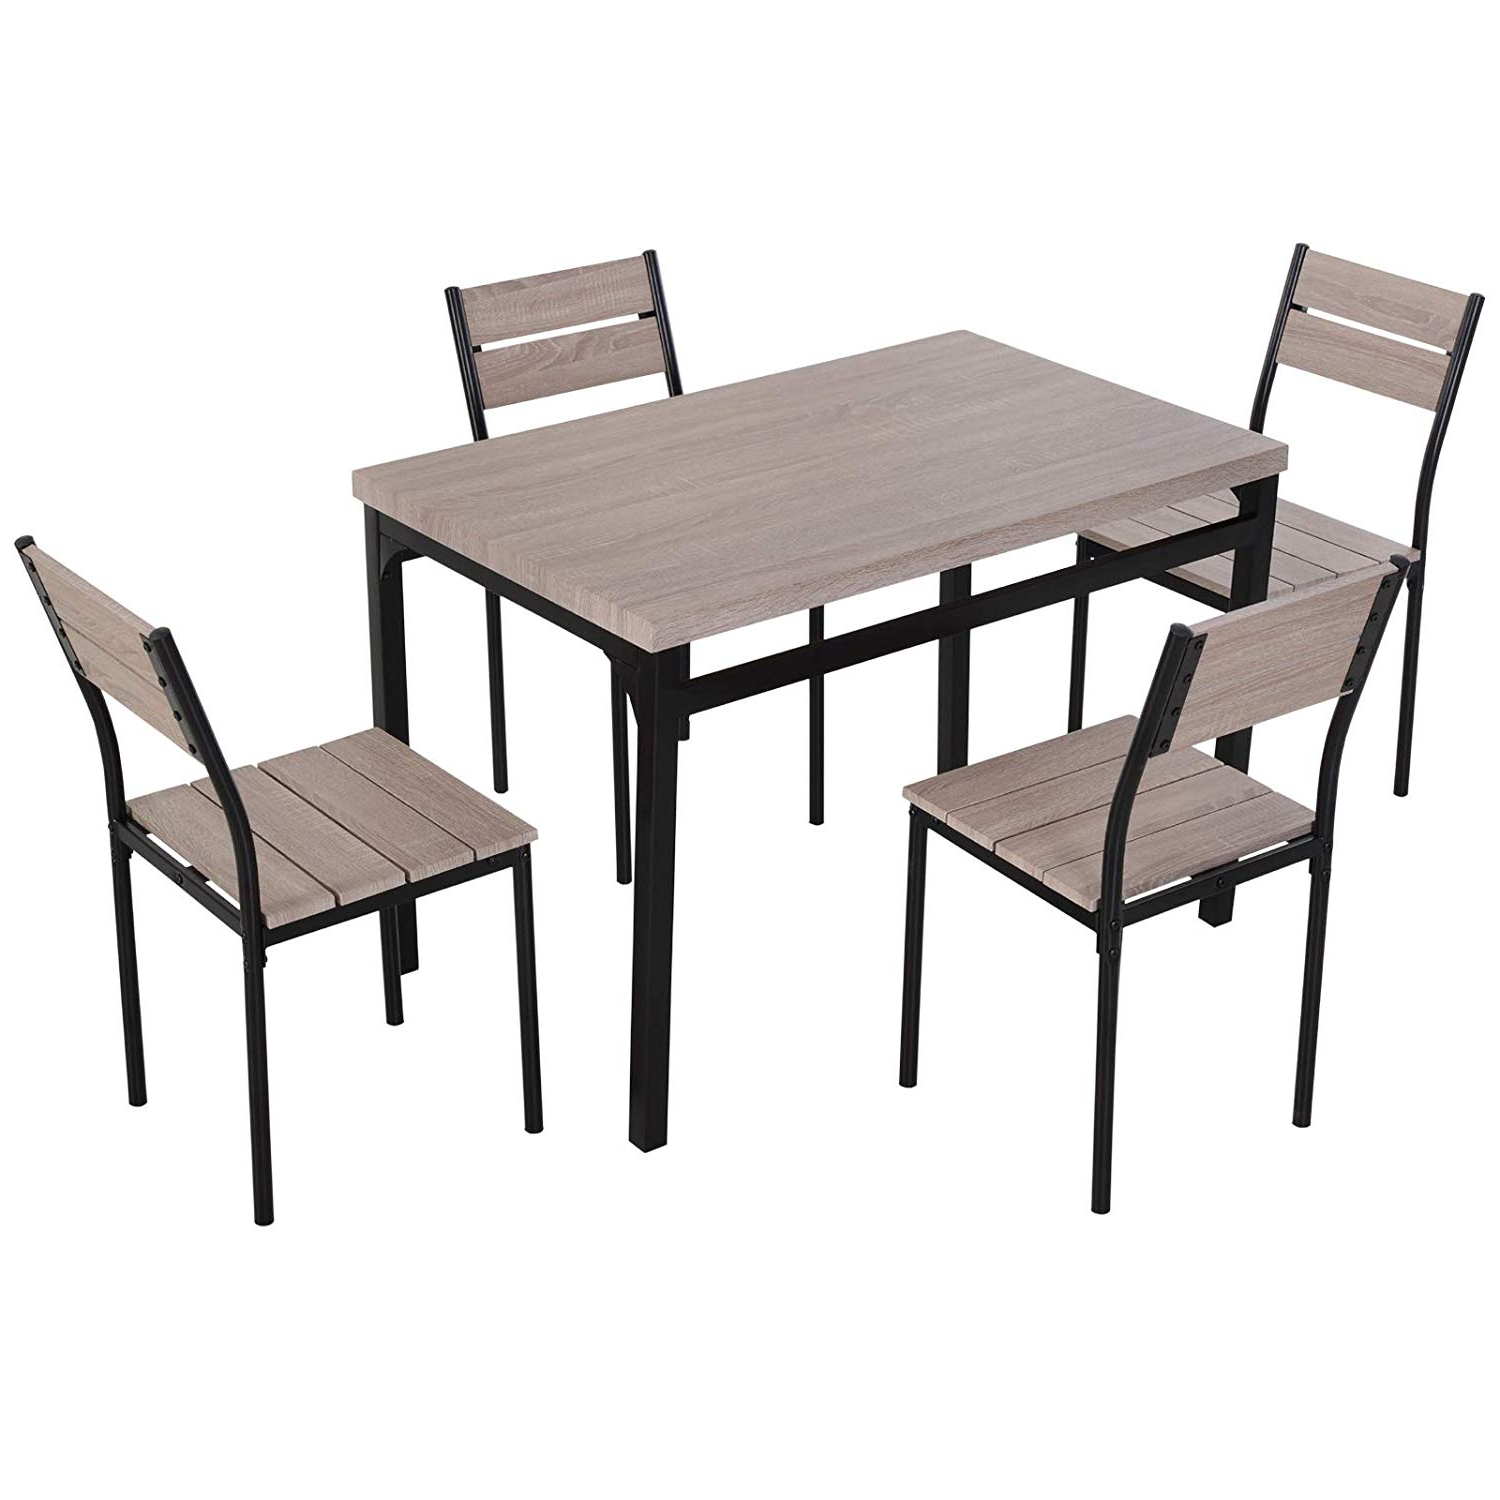 Homcom 5 Piece Transitional Style Dining Room Table Set With Chairs within Recent Large Rustic Look Dining Tables